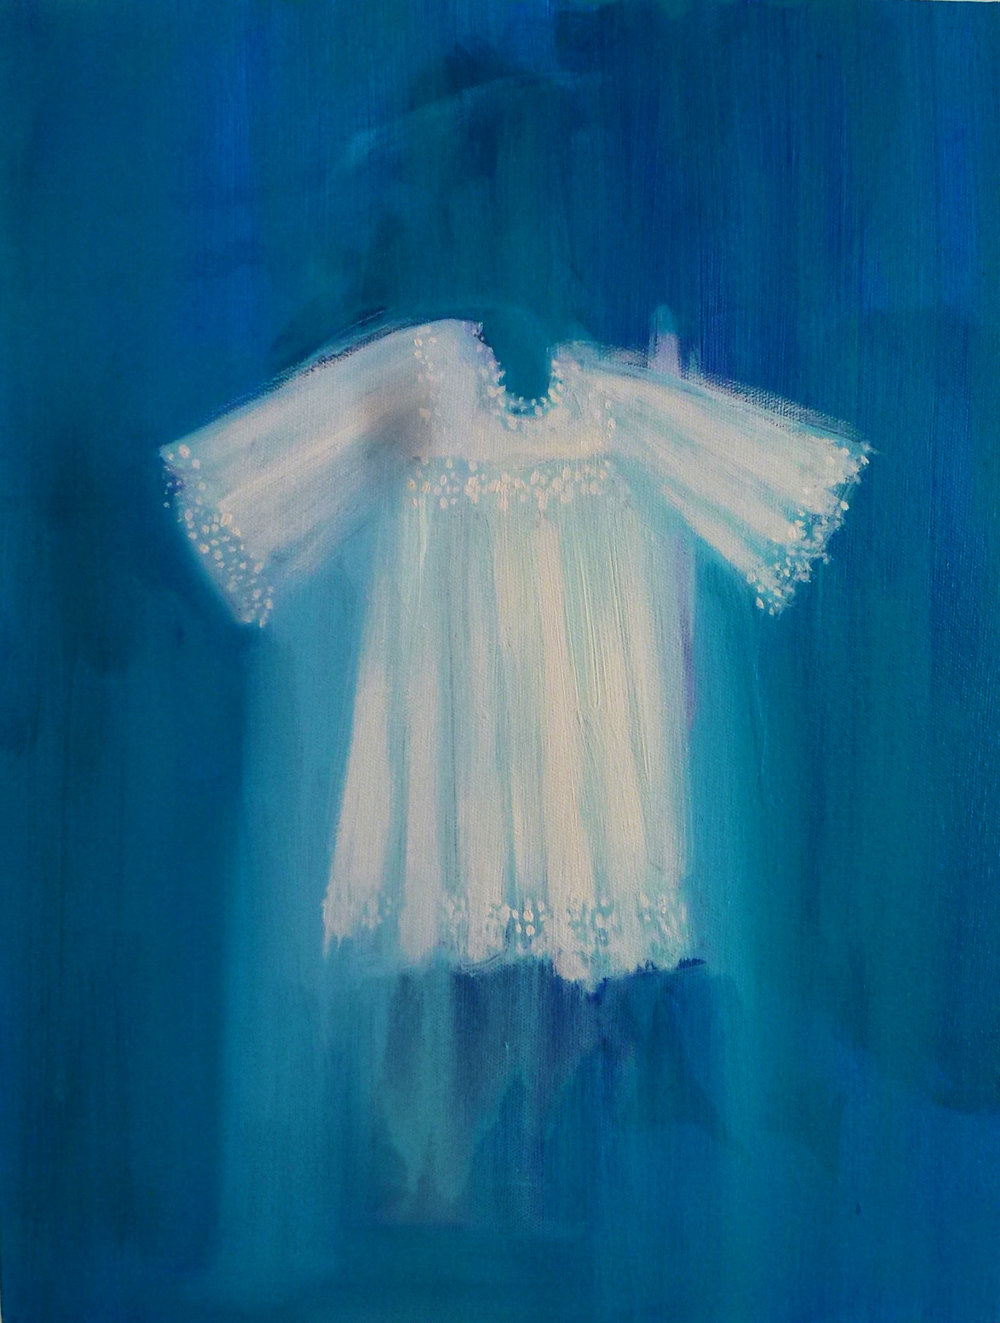 Copy of White Robe on Turquoise